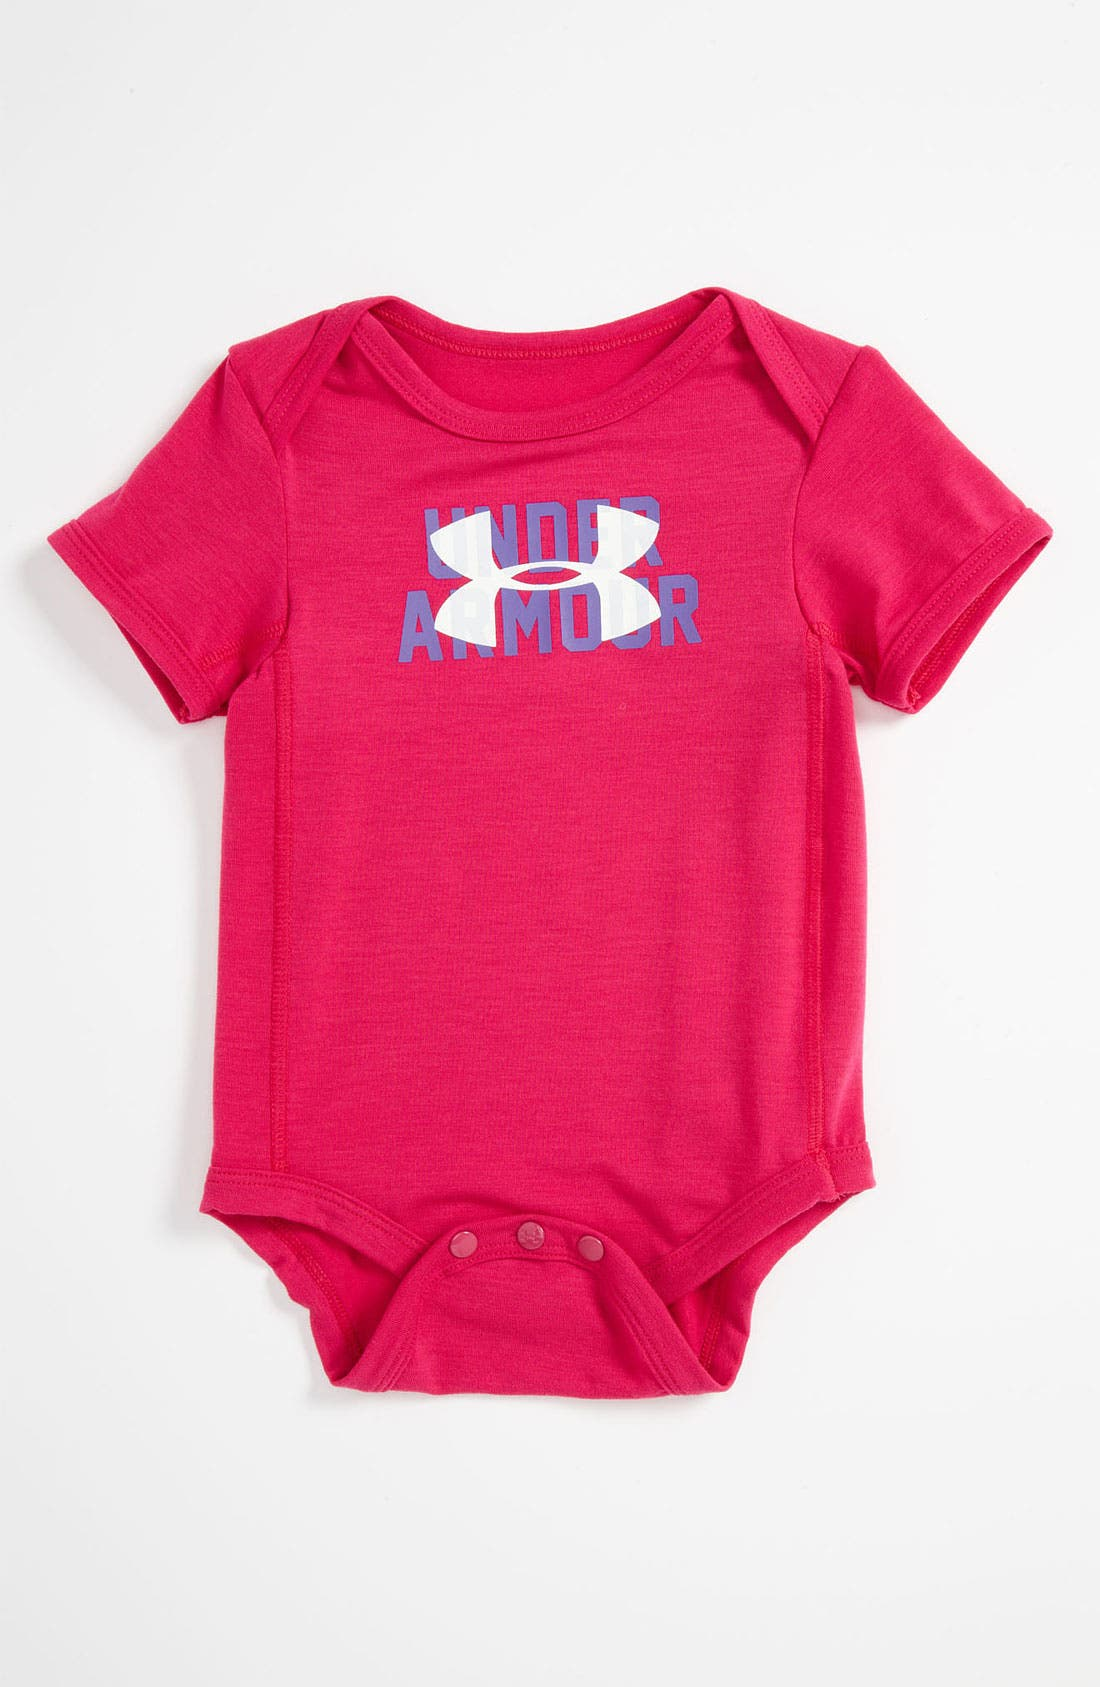 Alternate Image 1 Selected - Under Armour Bodysuit (Baby)